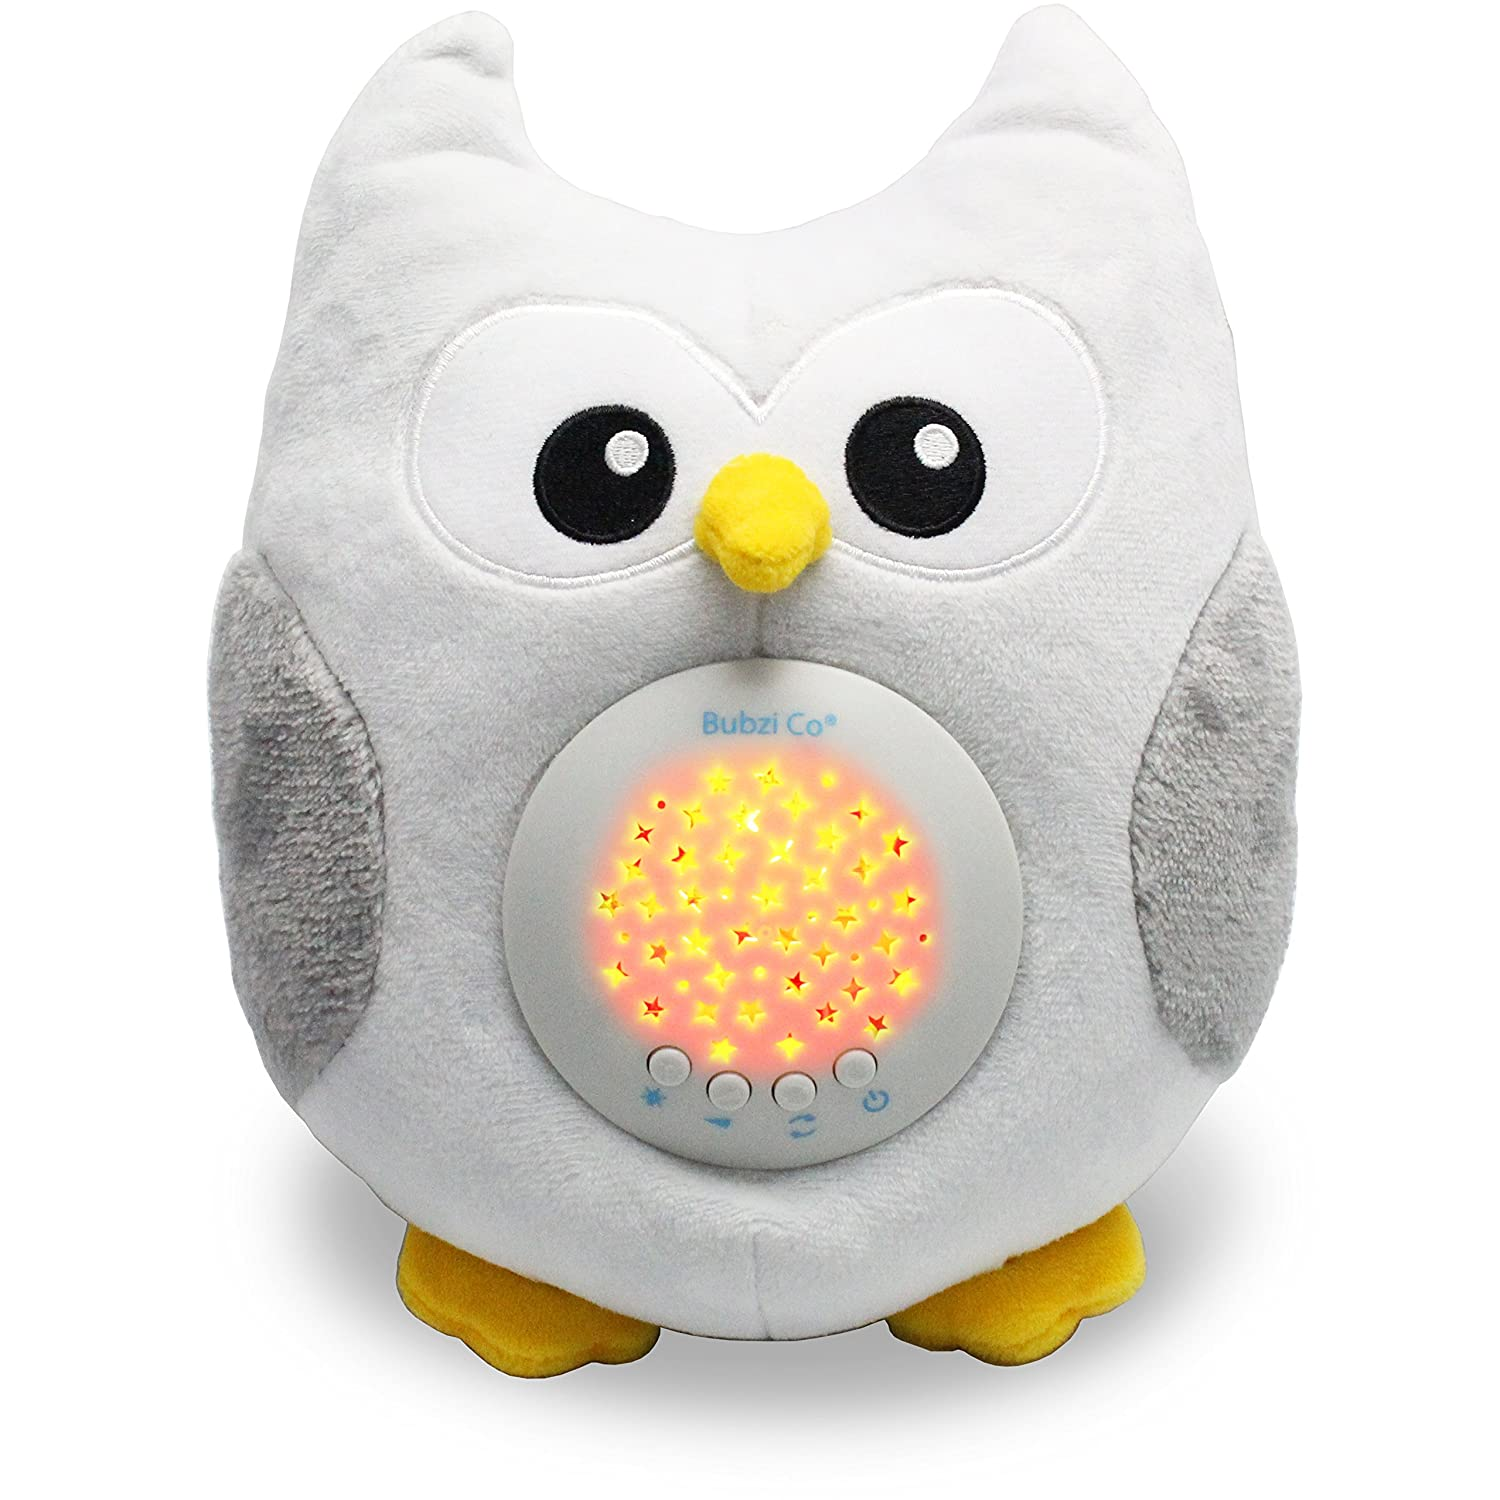 Bubzi Co Baby White Noise Sleep Aid Night Light & Shusher Sound Machine & Baby Gift, Woodland Owl Decor Nursery & Portable Soother Stuffed Animals Owl with 10 Popular Songs For Crib to Comfort Plush Toy …